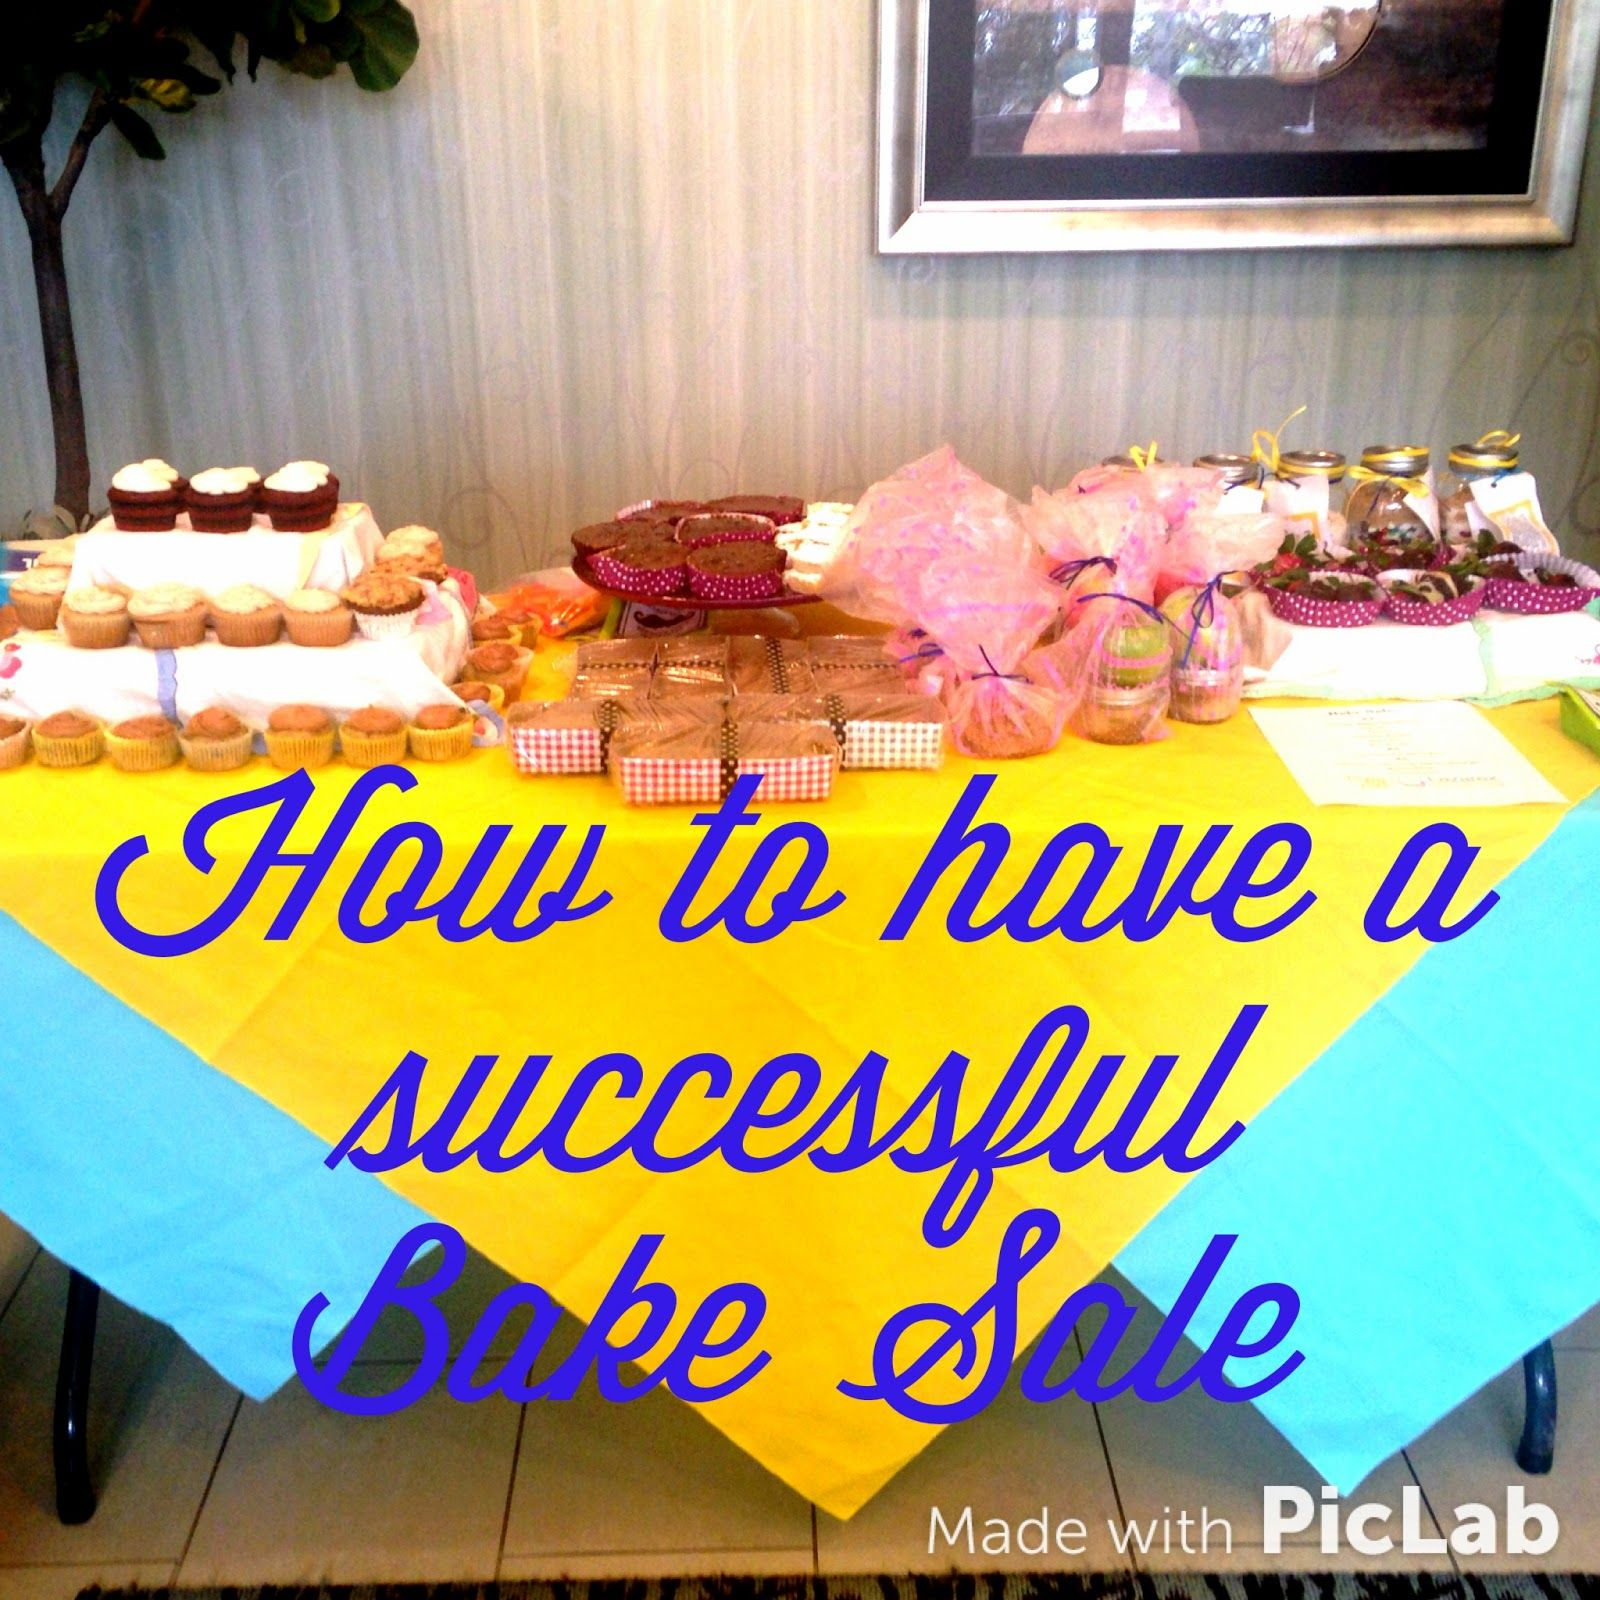 Tips, tricks, and recipes for a successful bake sale! #bakesaleideas